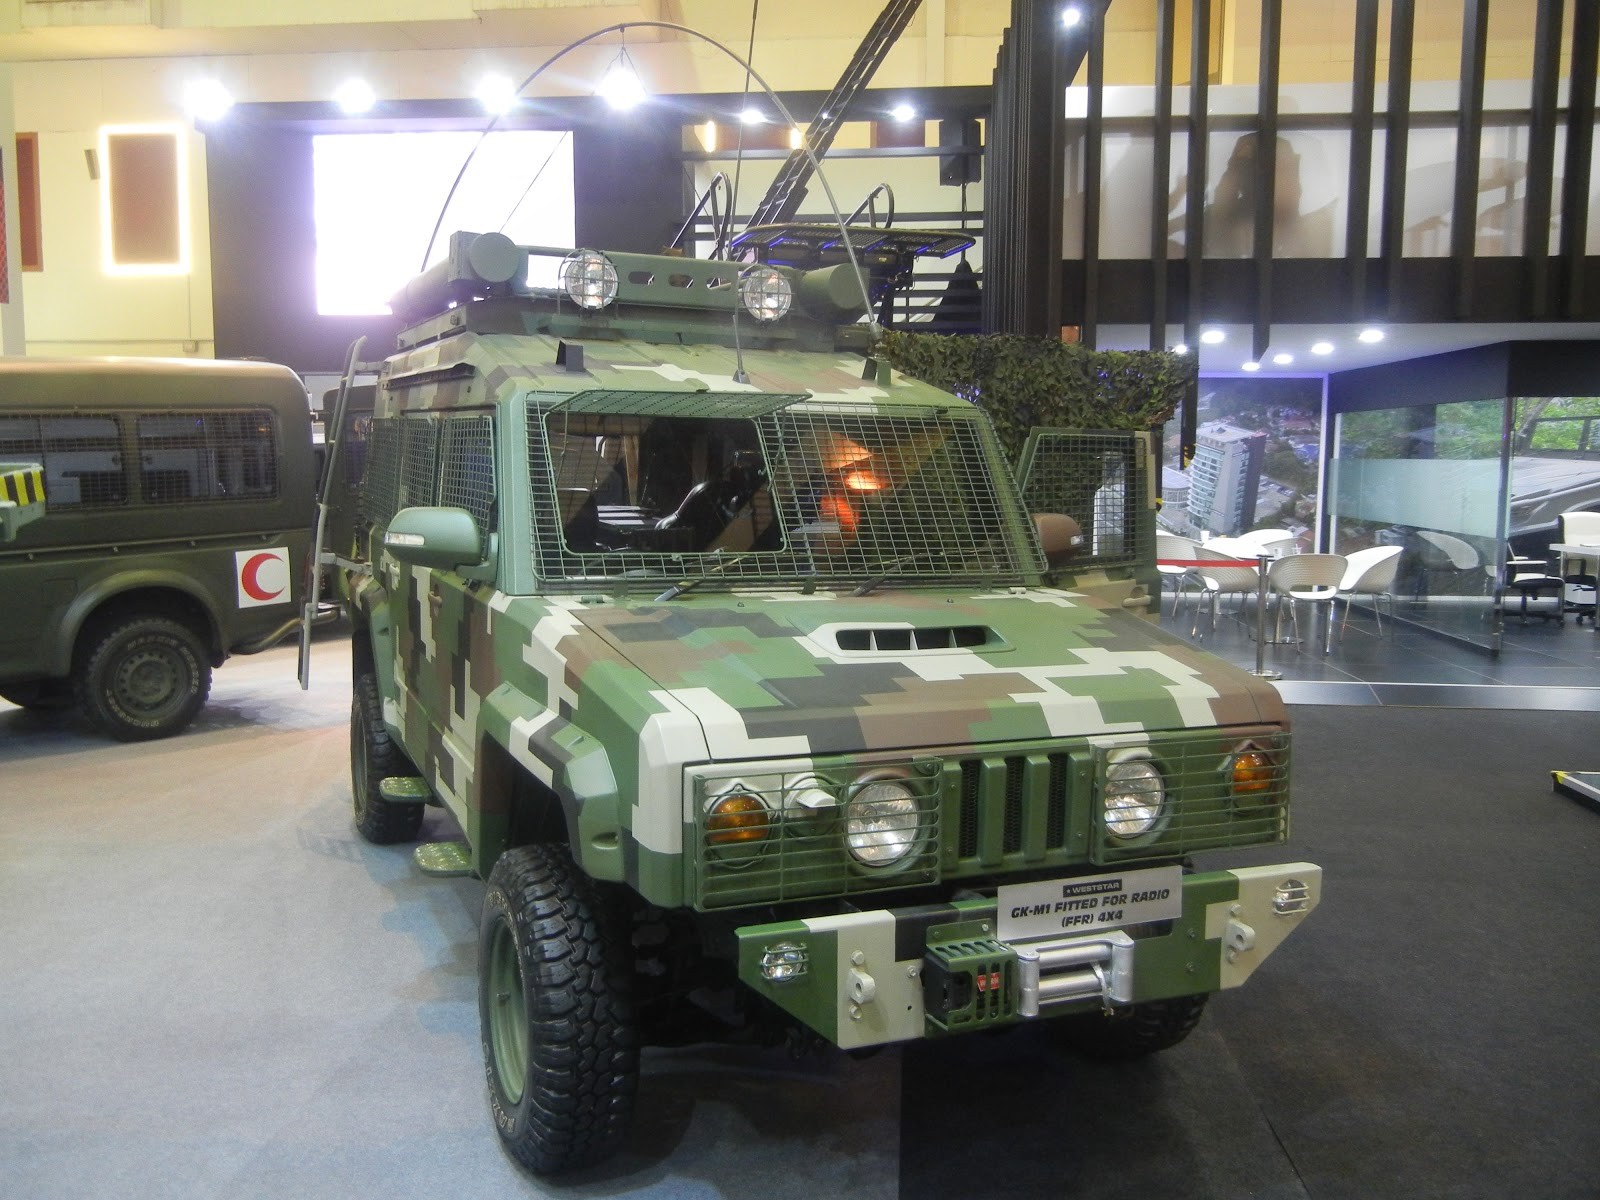 GK-M1 Rapid Rover 4x4 vehicle (c) miltechmag.com